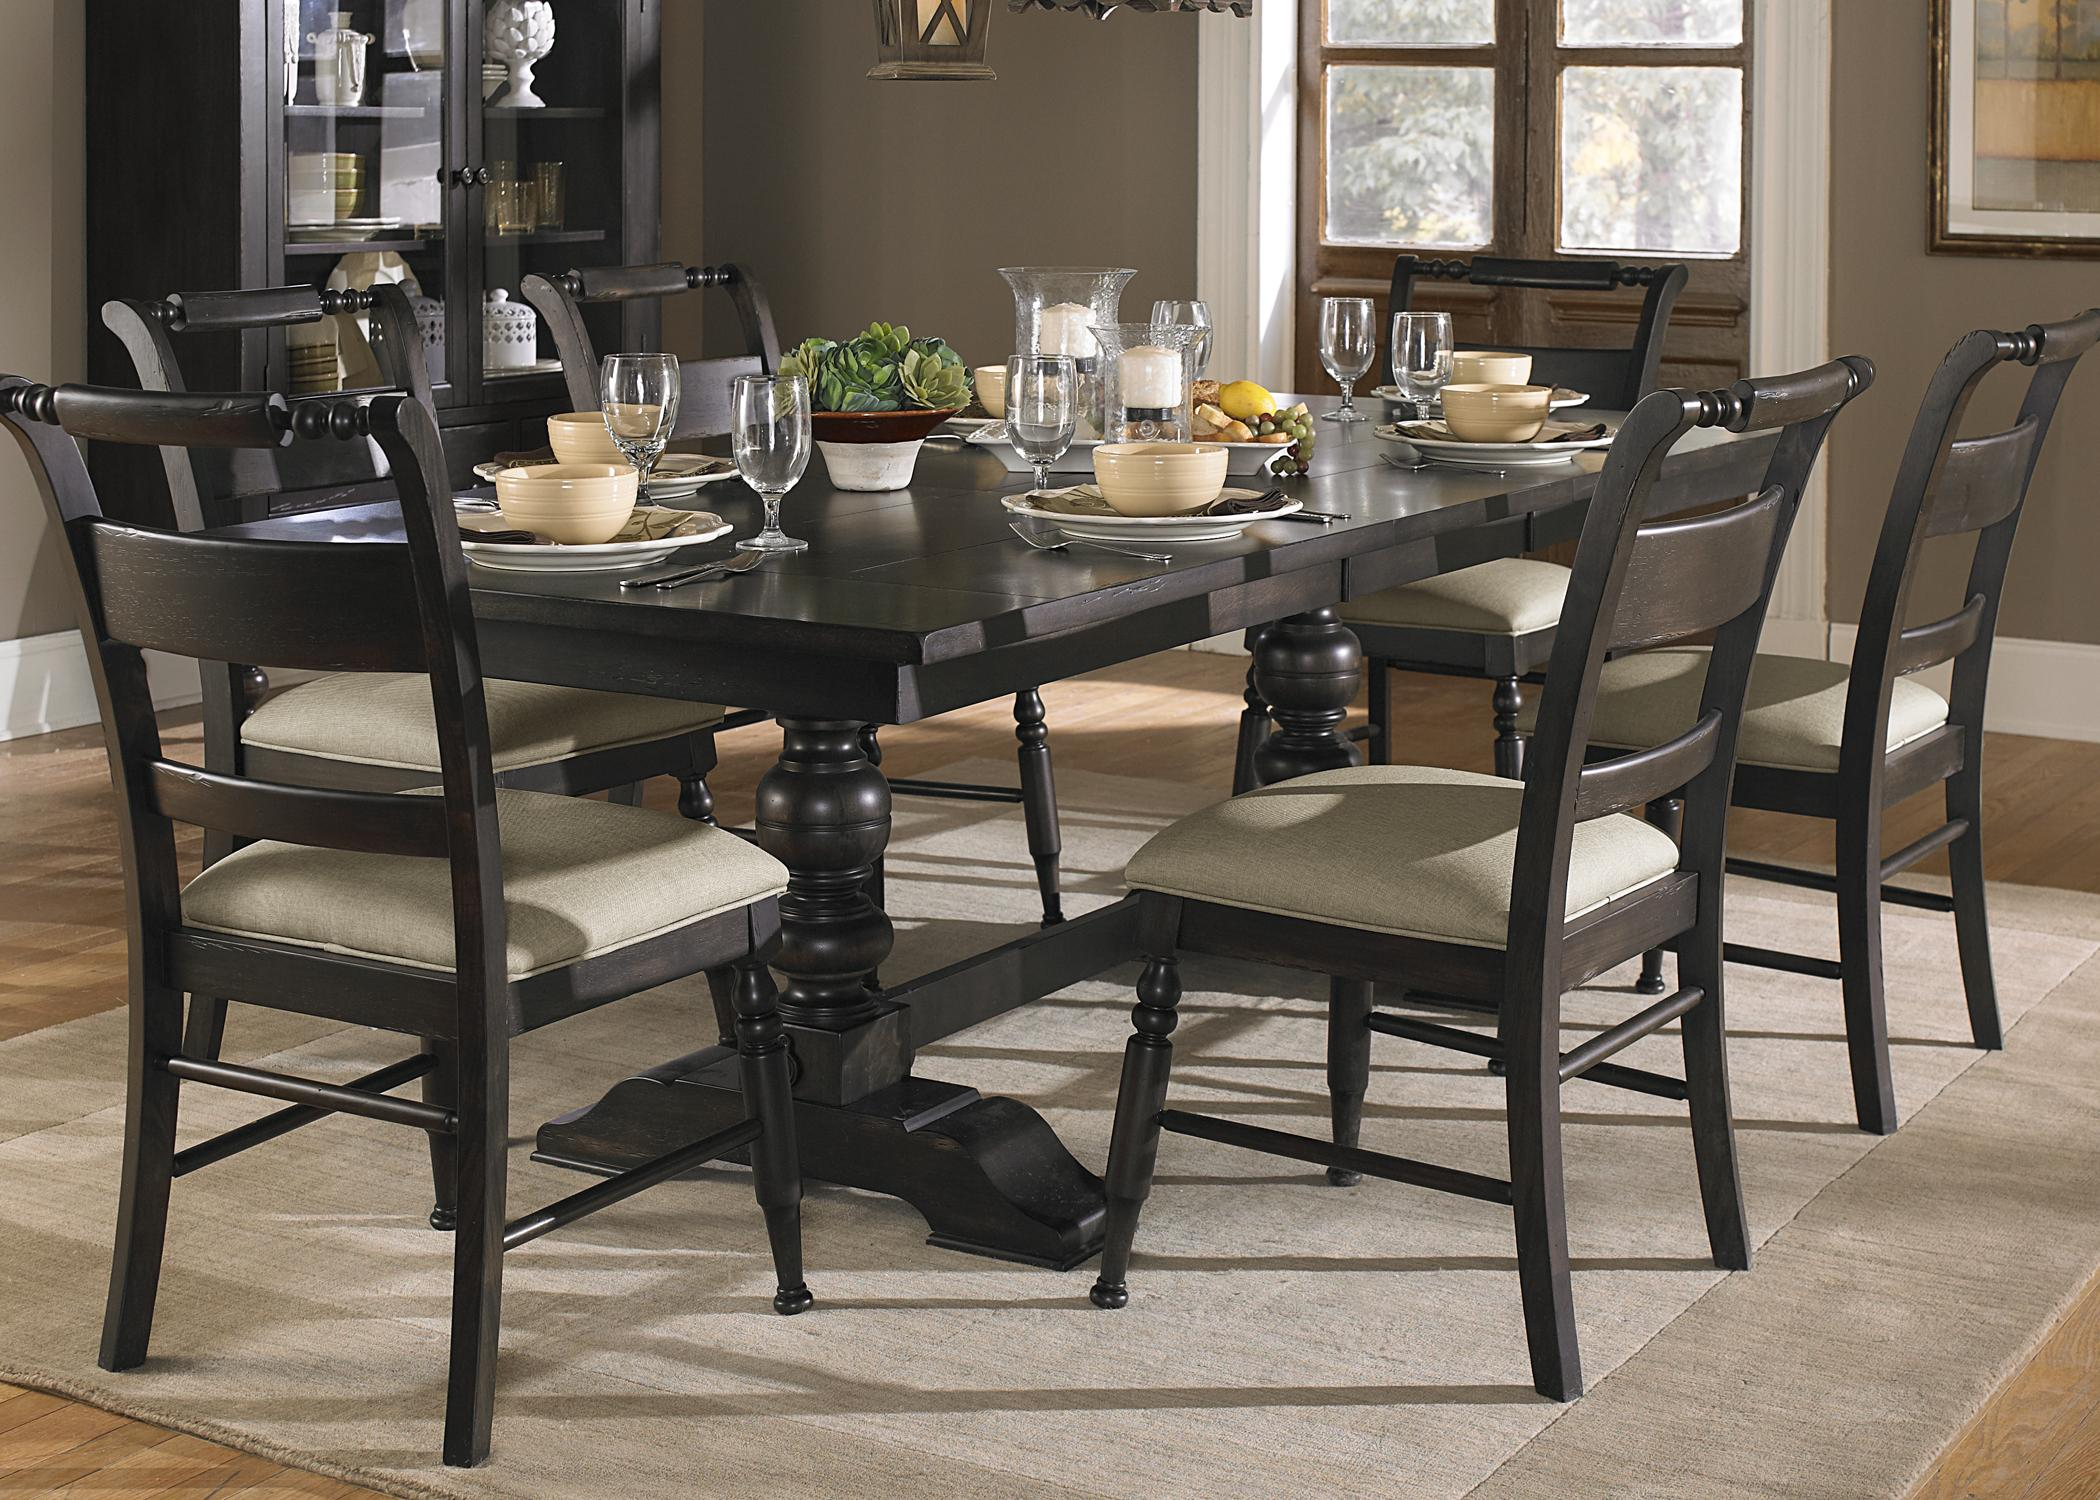 Dining Room Table And Chairs Magnificent 7 Piece Trestle Dining Room Table Setliberty Furniture  Wolf Inspiration Design